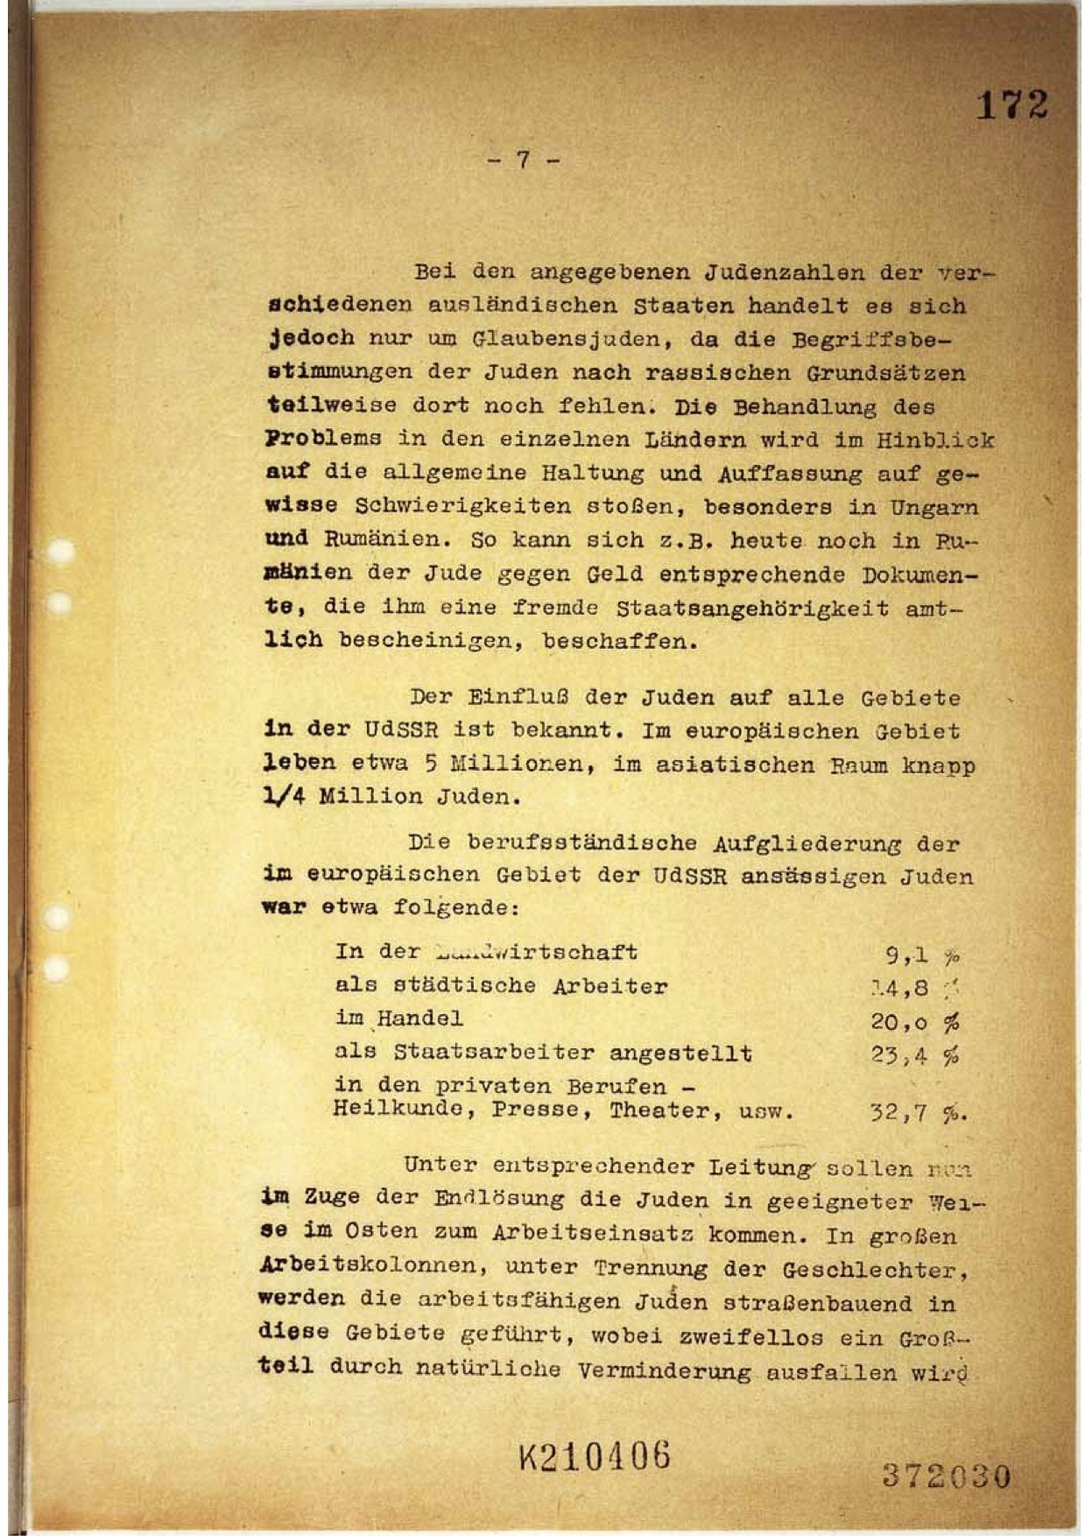 Page from the minutes of the Wannsee Conference. It says that Jews will be moved to the East under the guise of employment policies. Most of them are expected to die due to the hard work. The rest will be given 'appropriate treatment', i.e. be murdered.